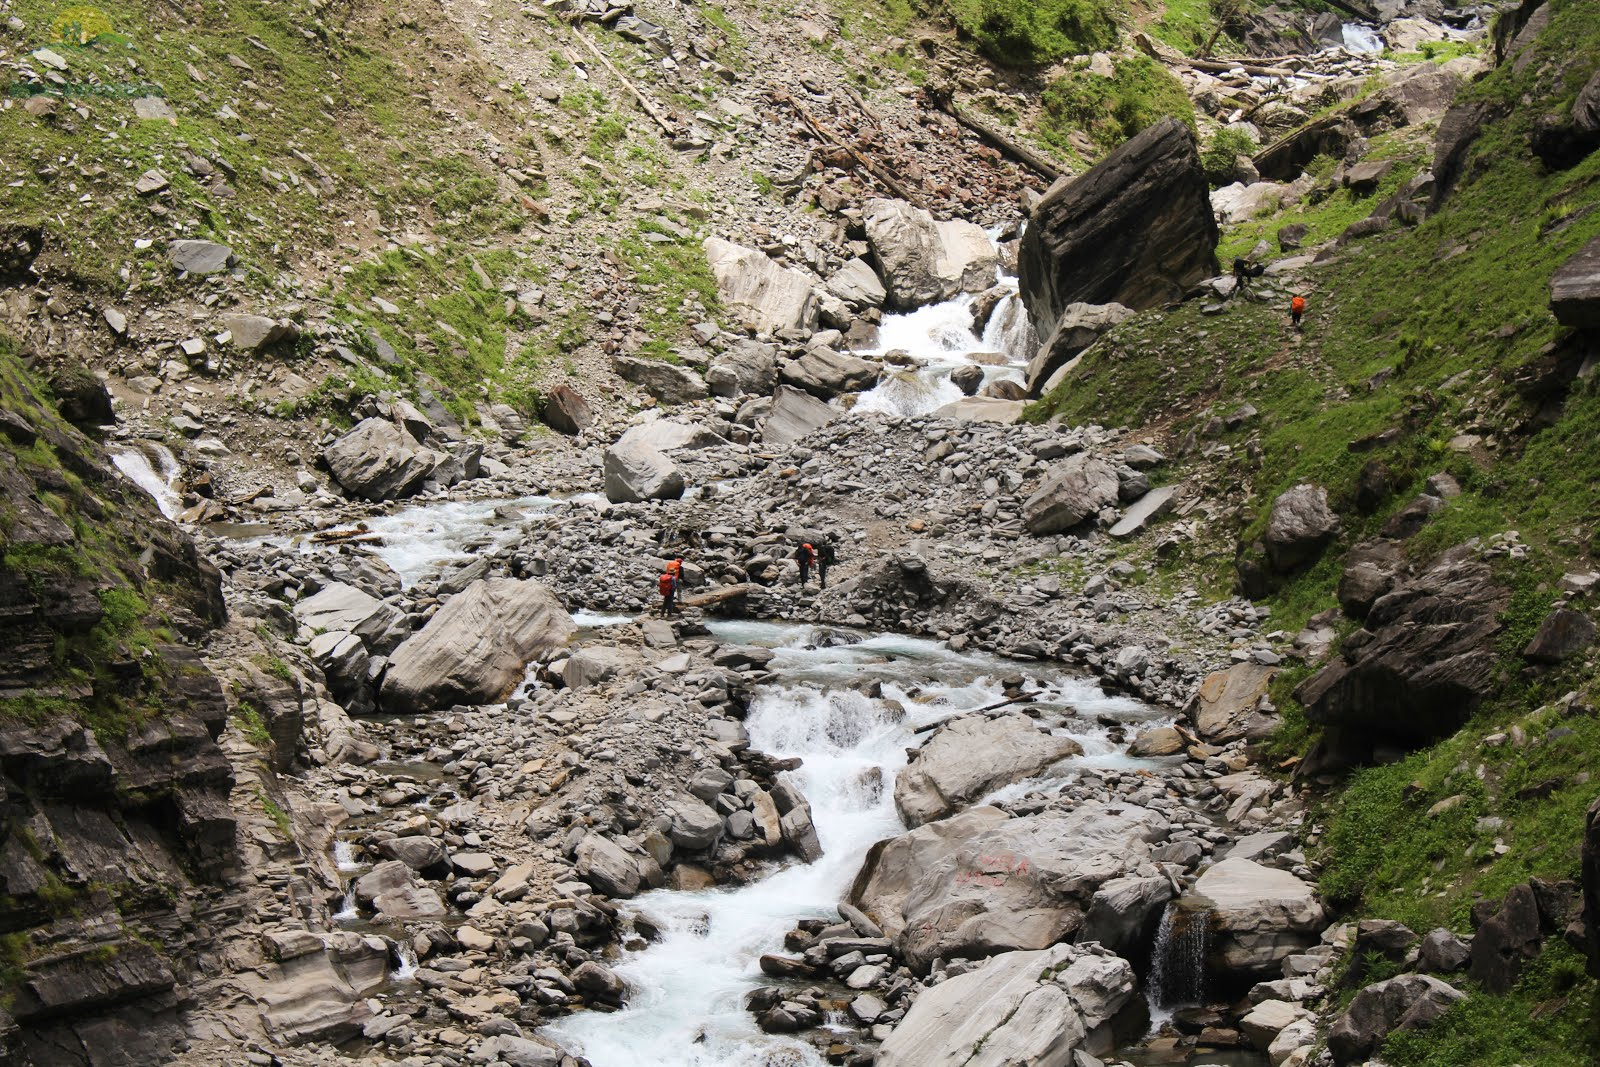 Rupin River, the main path of the Rupin Pass Trek